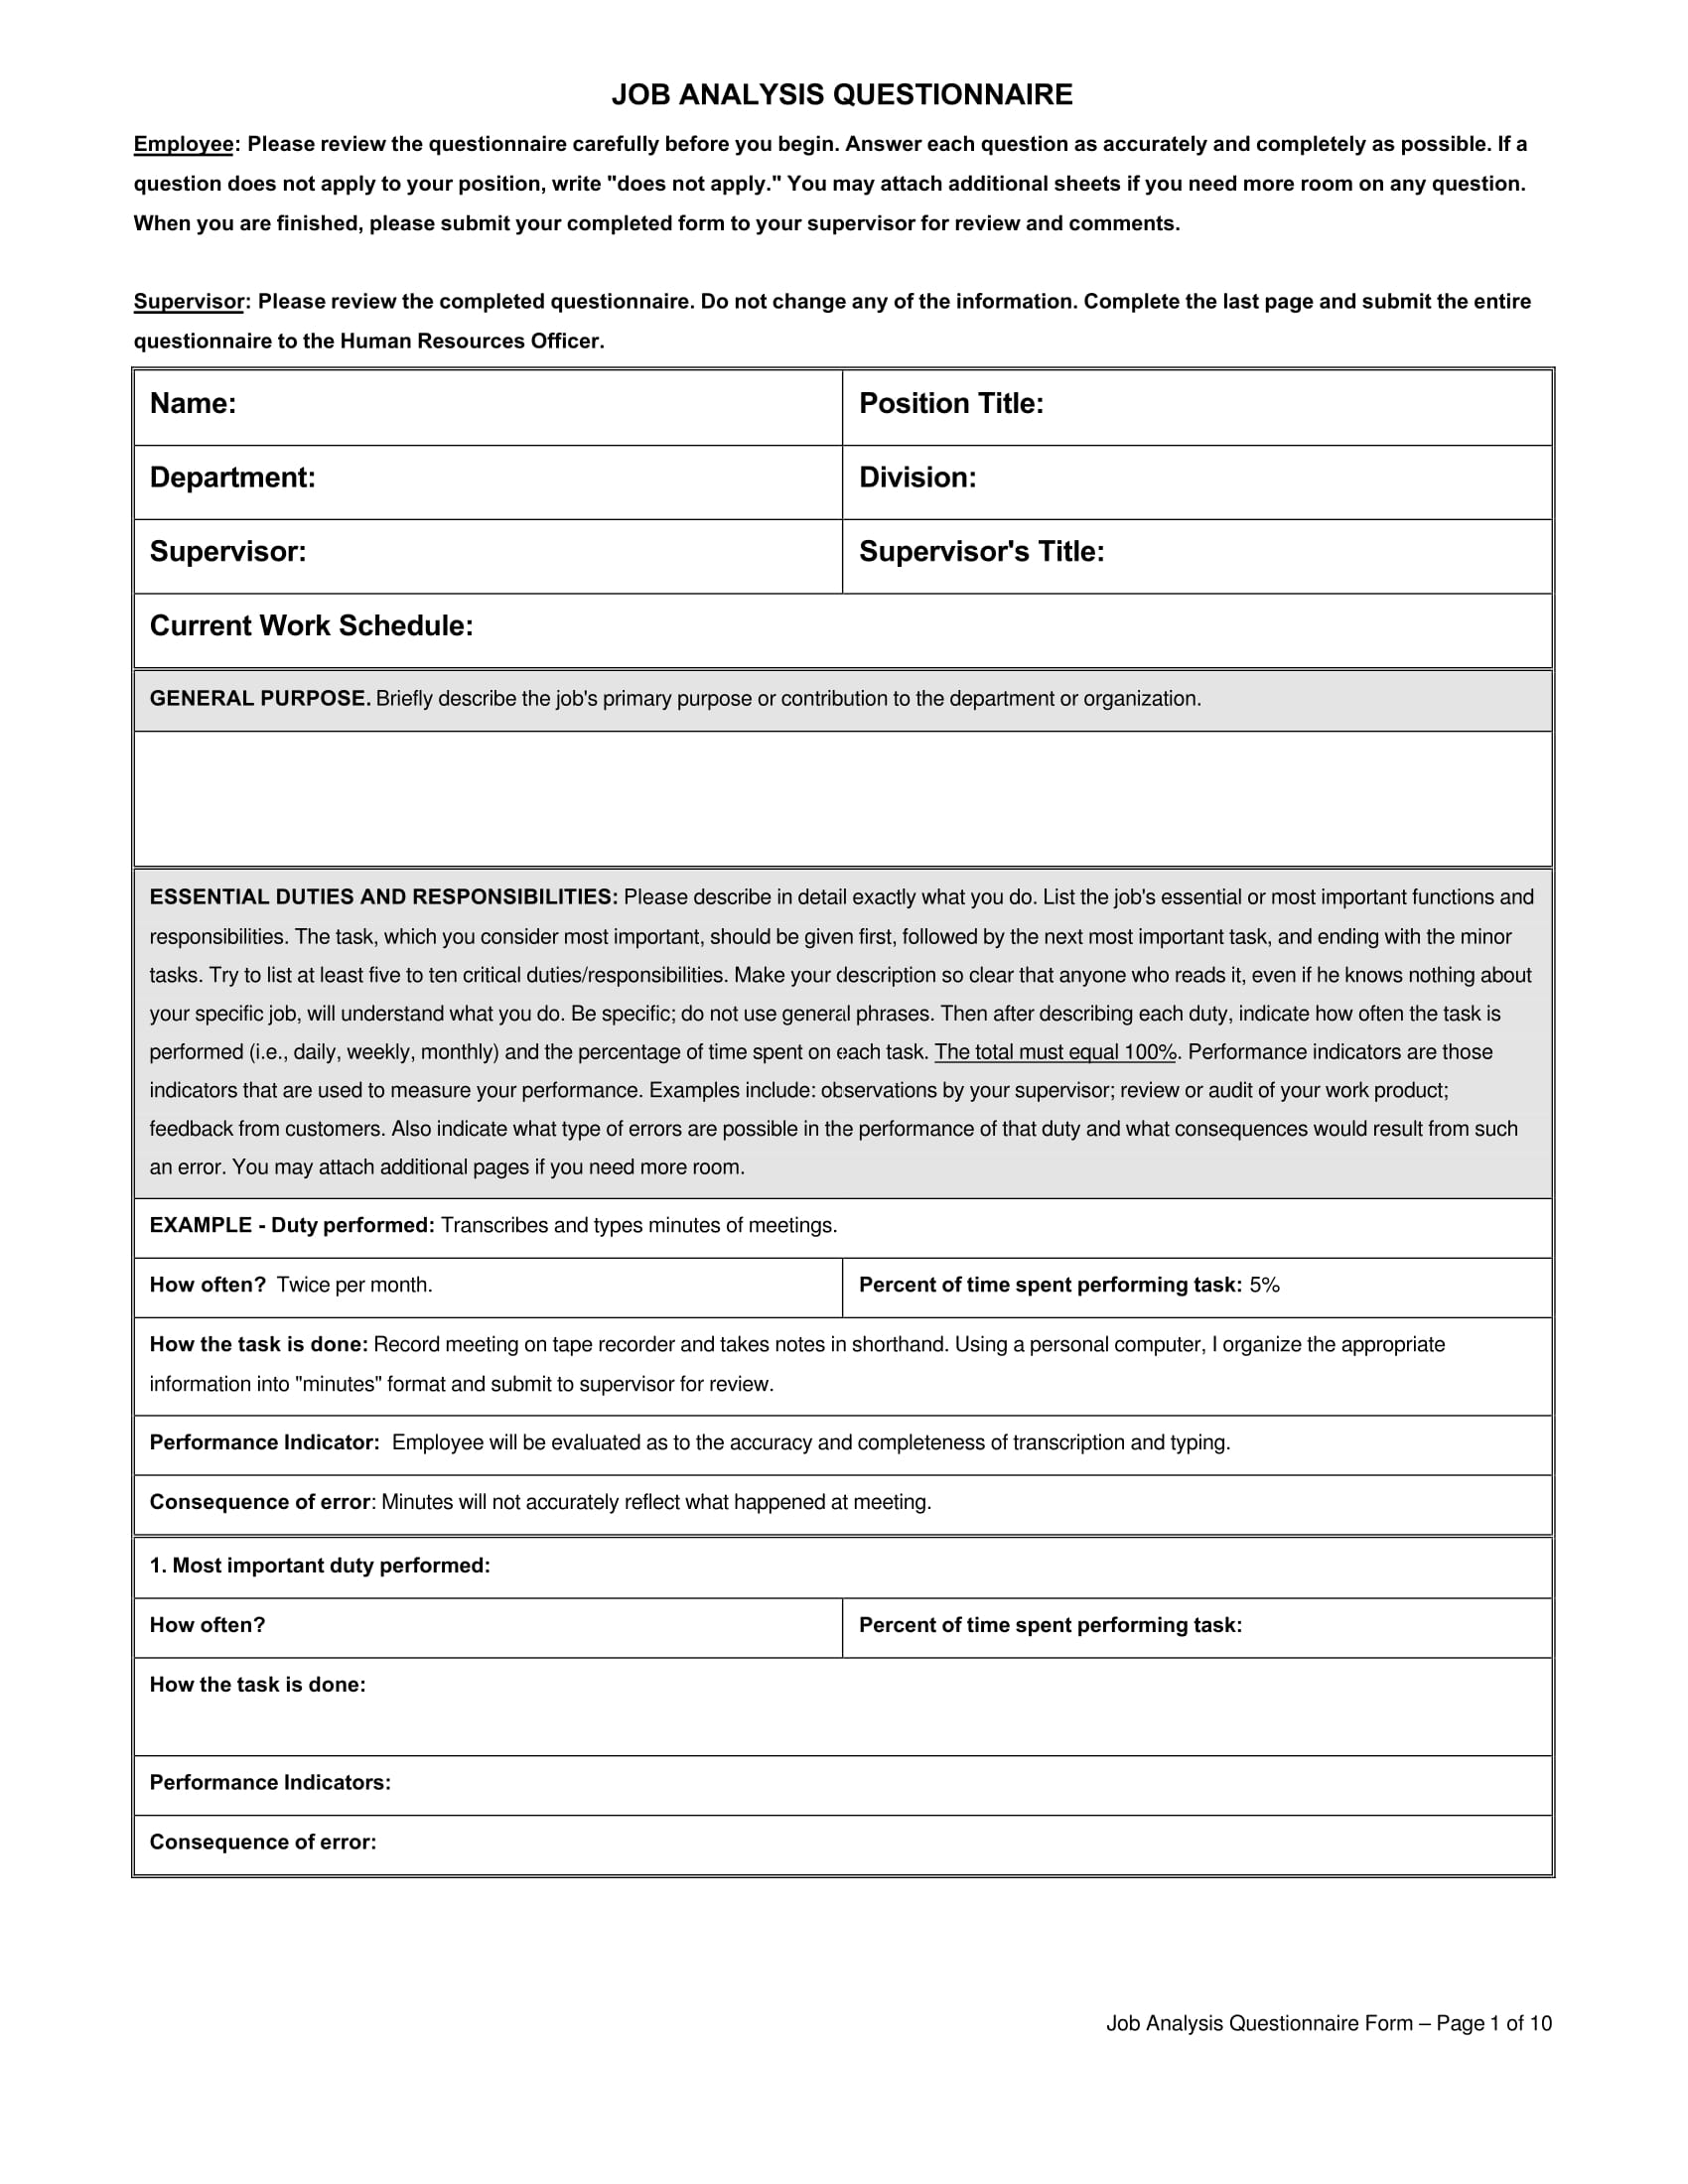 job analysis questionnaire form 01